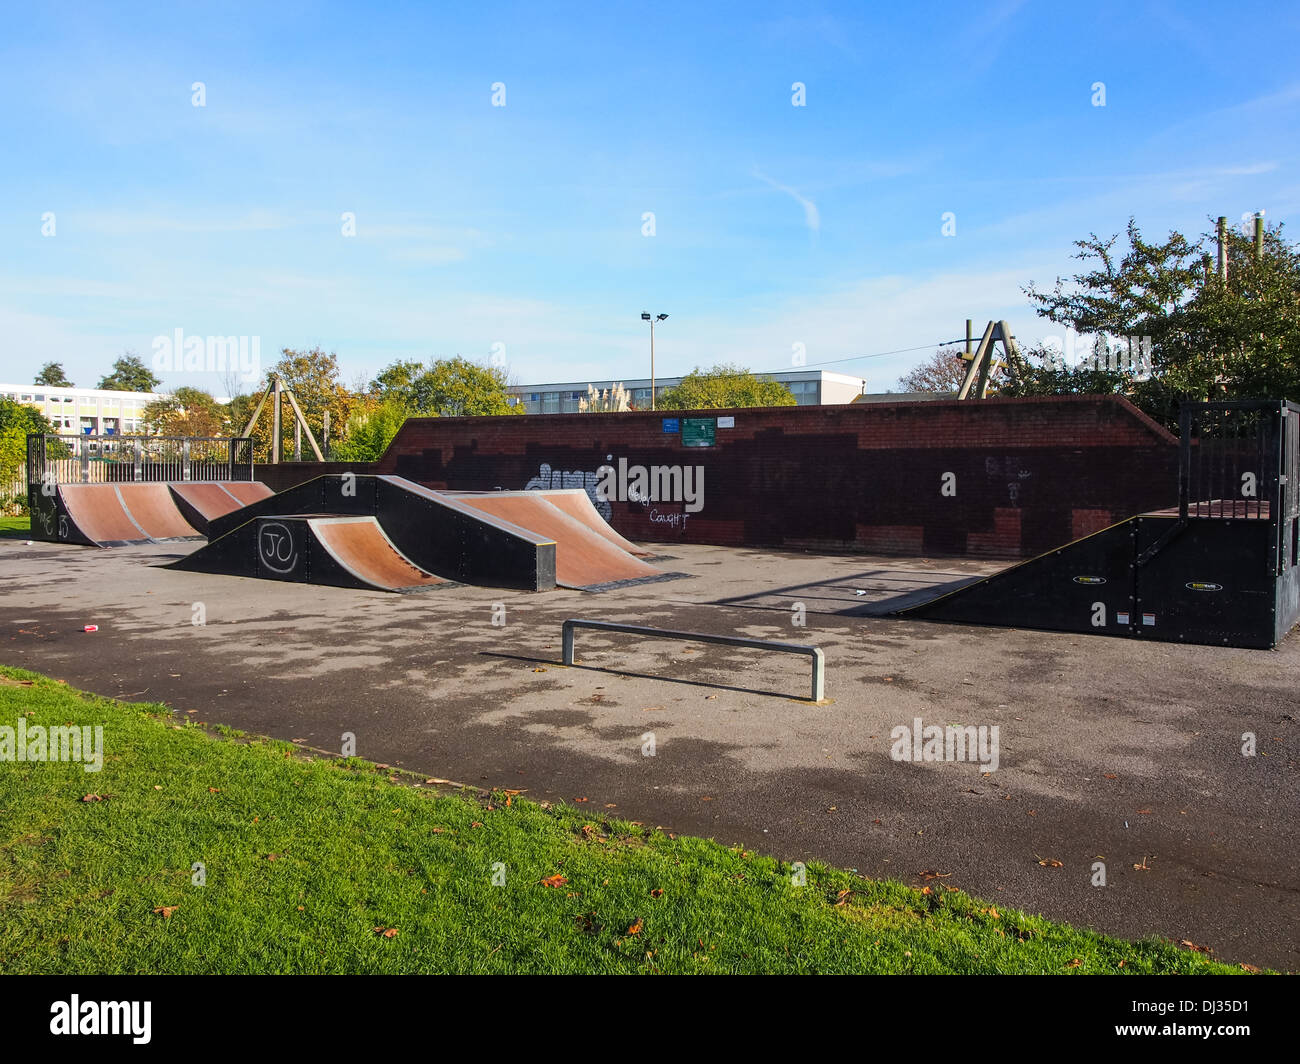 An urban skatepark on a housing estate in Portsmouth, Hampshire, England - Stock Image